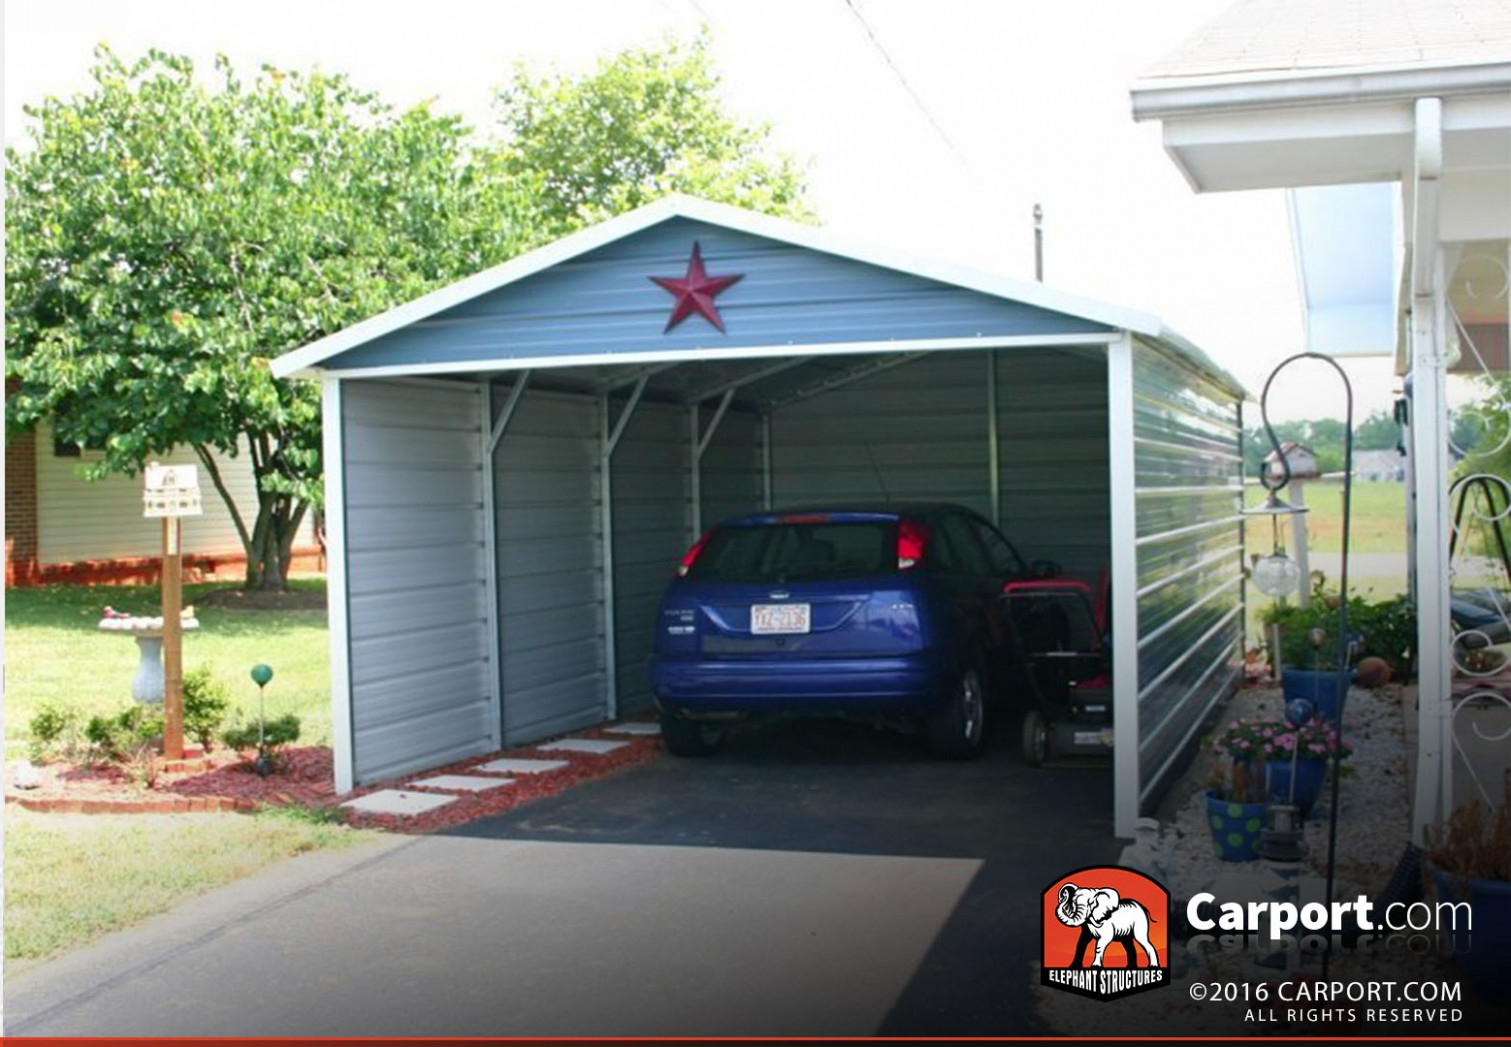 12x12 Single Car Carport Boxed Eave Roof What Does Carport Parking Mean